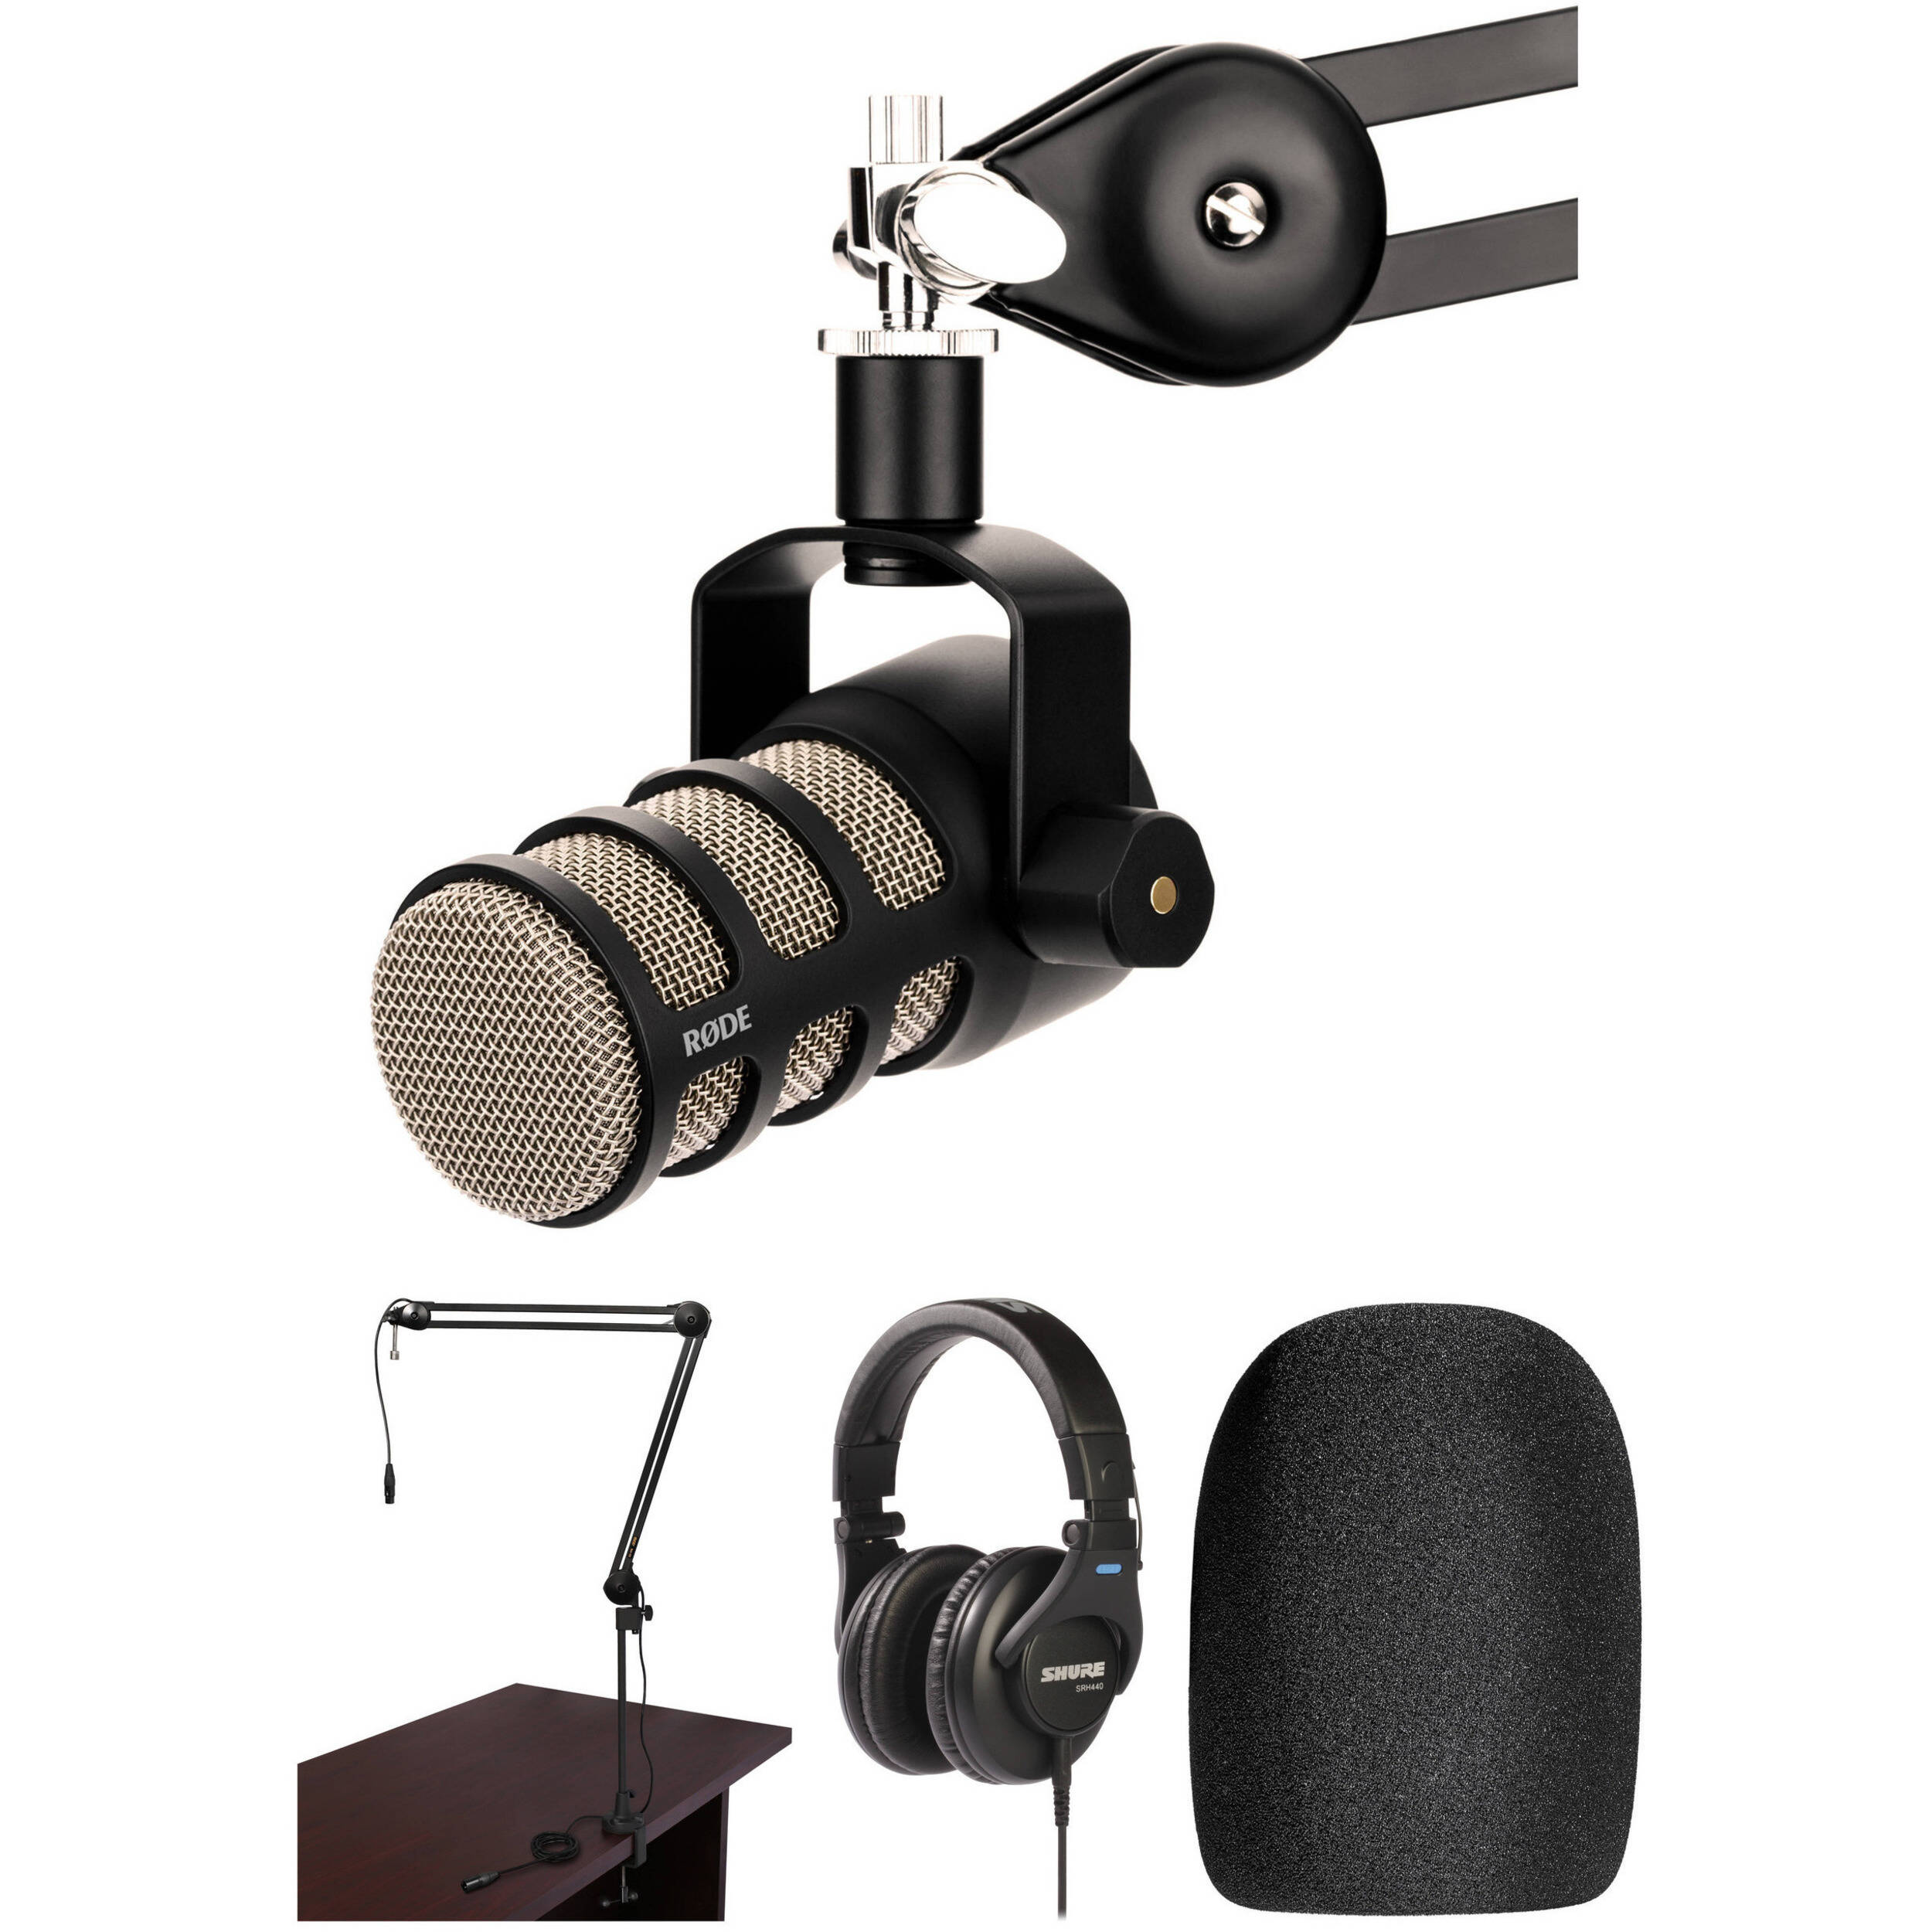 Rode PodMic Microphone with Broadcast Arm and Headphone Kit